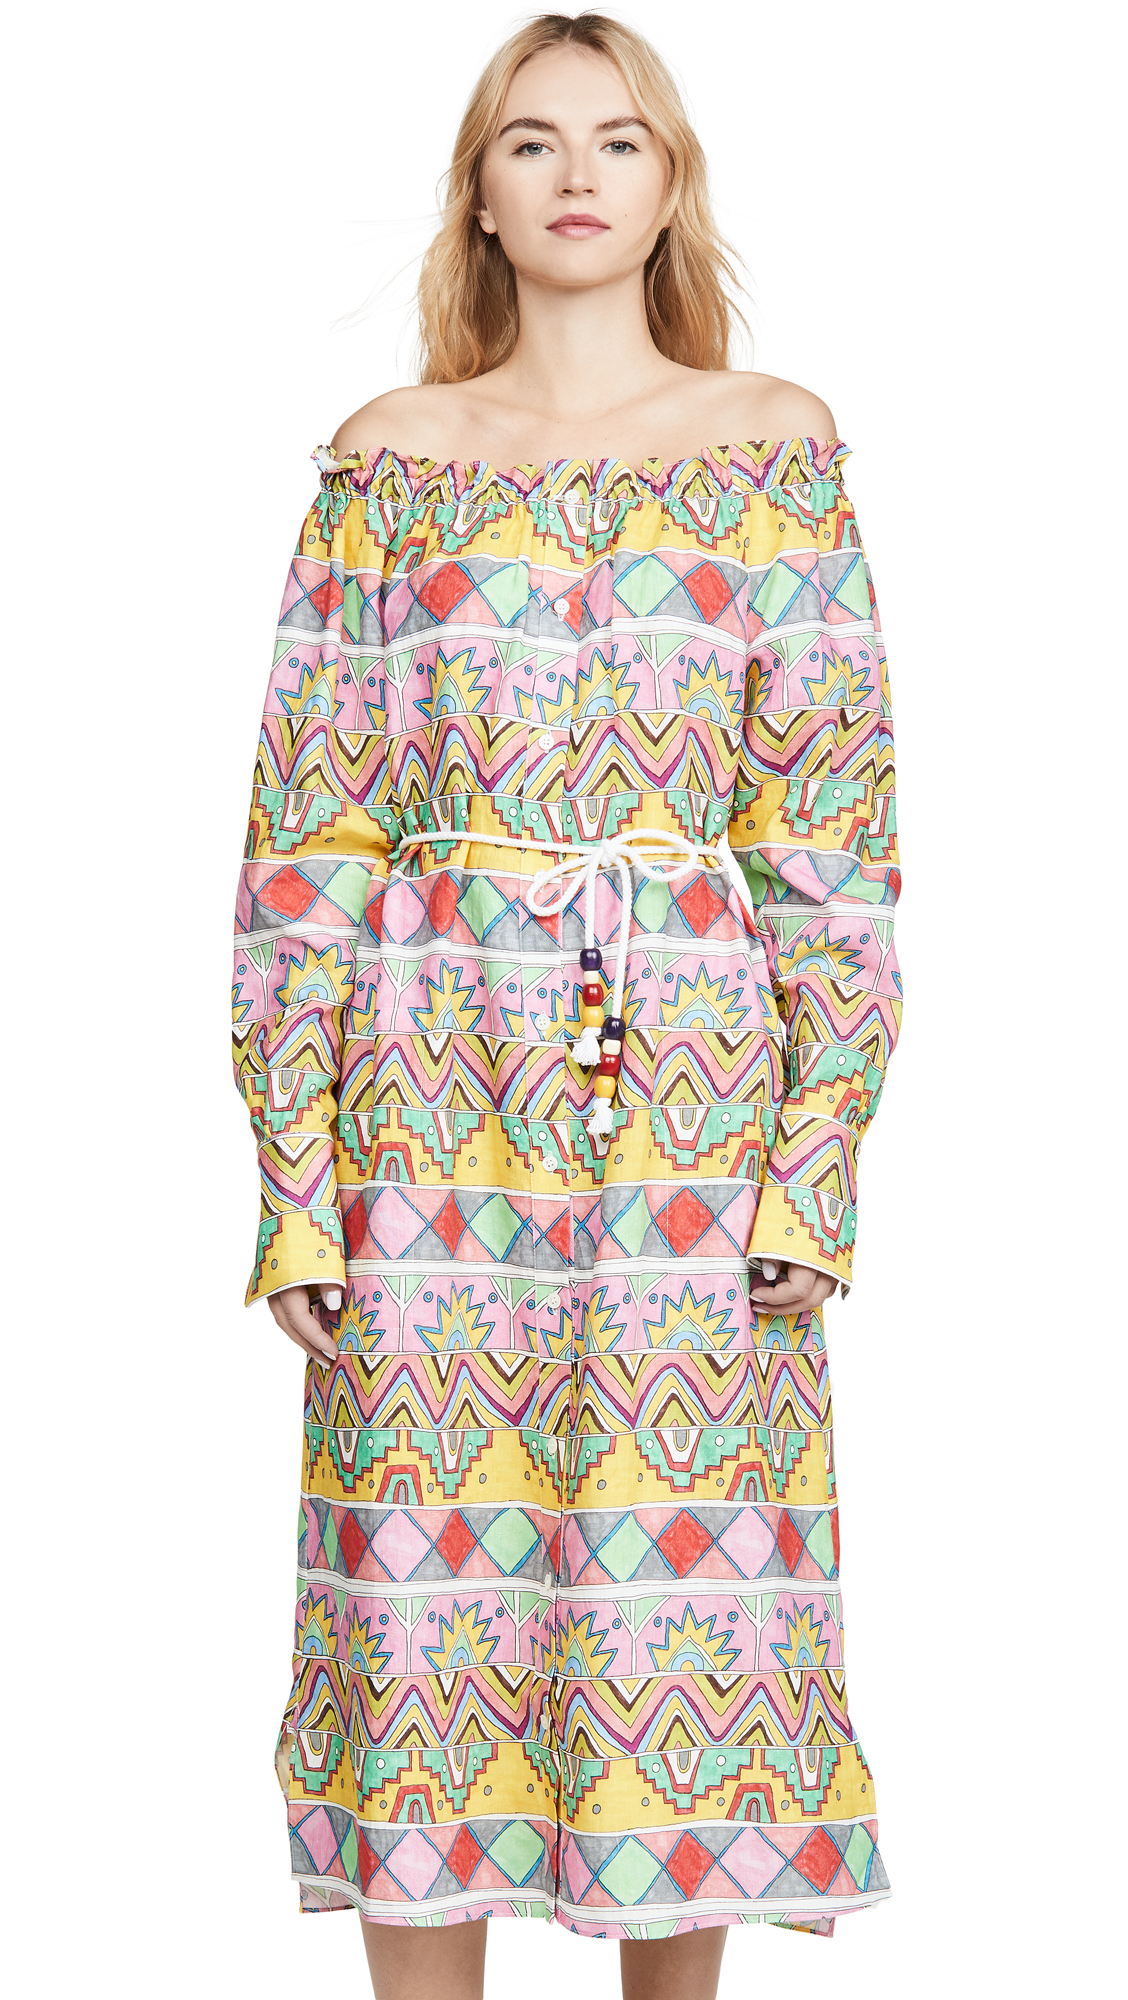 Mira Mikati Ribbon Print Open Neck Shirt Dress - 60% Off Sale